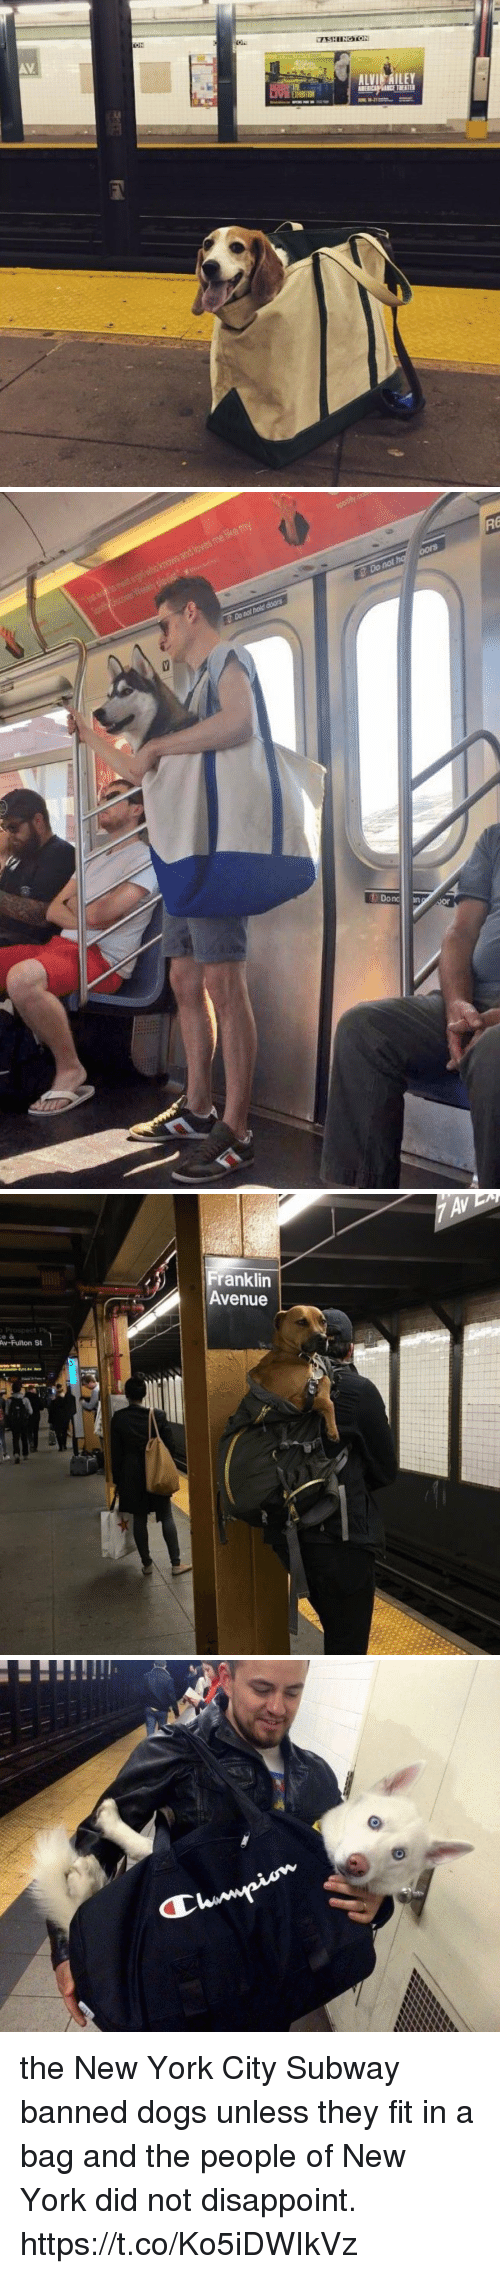 Franklinator: AV  ALVI AILEY   Franklin  Avenue  Av-Fulton St the New York City Subway banned dogs unless they fit in a bag and the people of New York did not disappoint. https://t.co/Ko5iDWIkVz